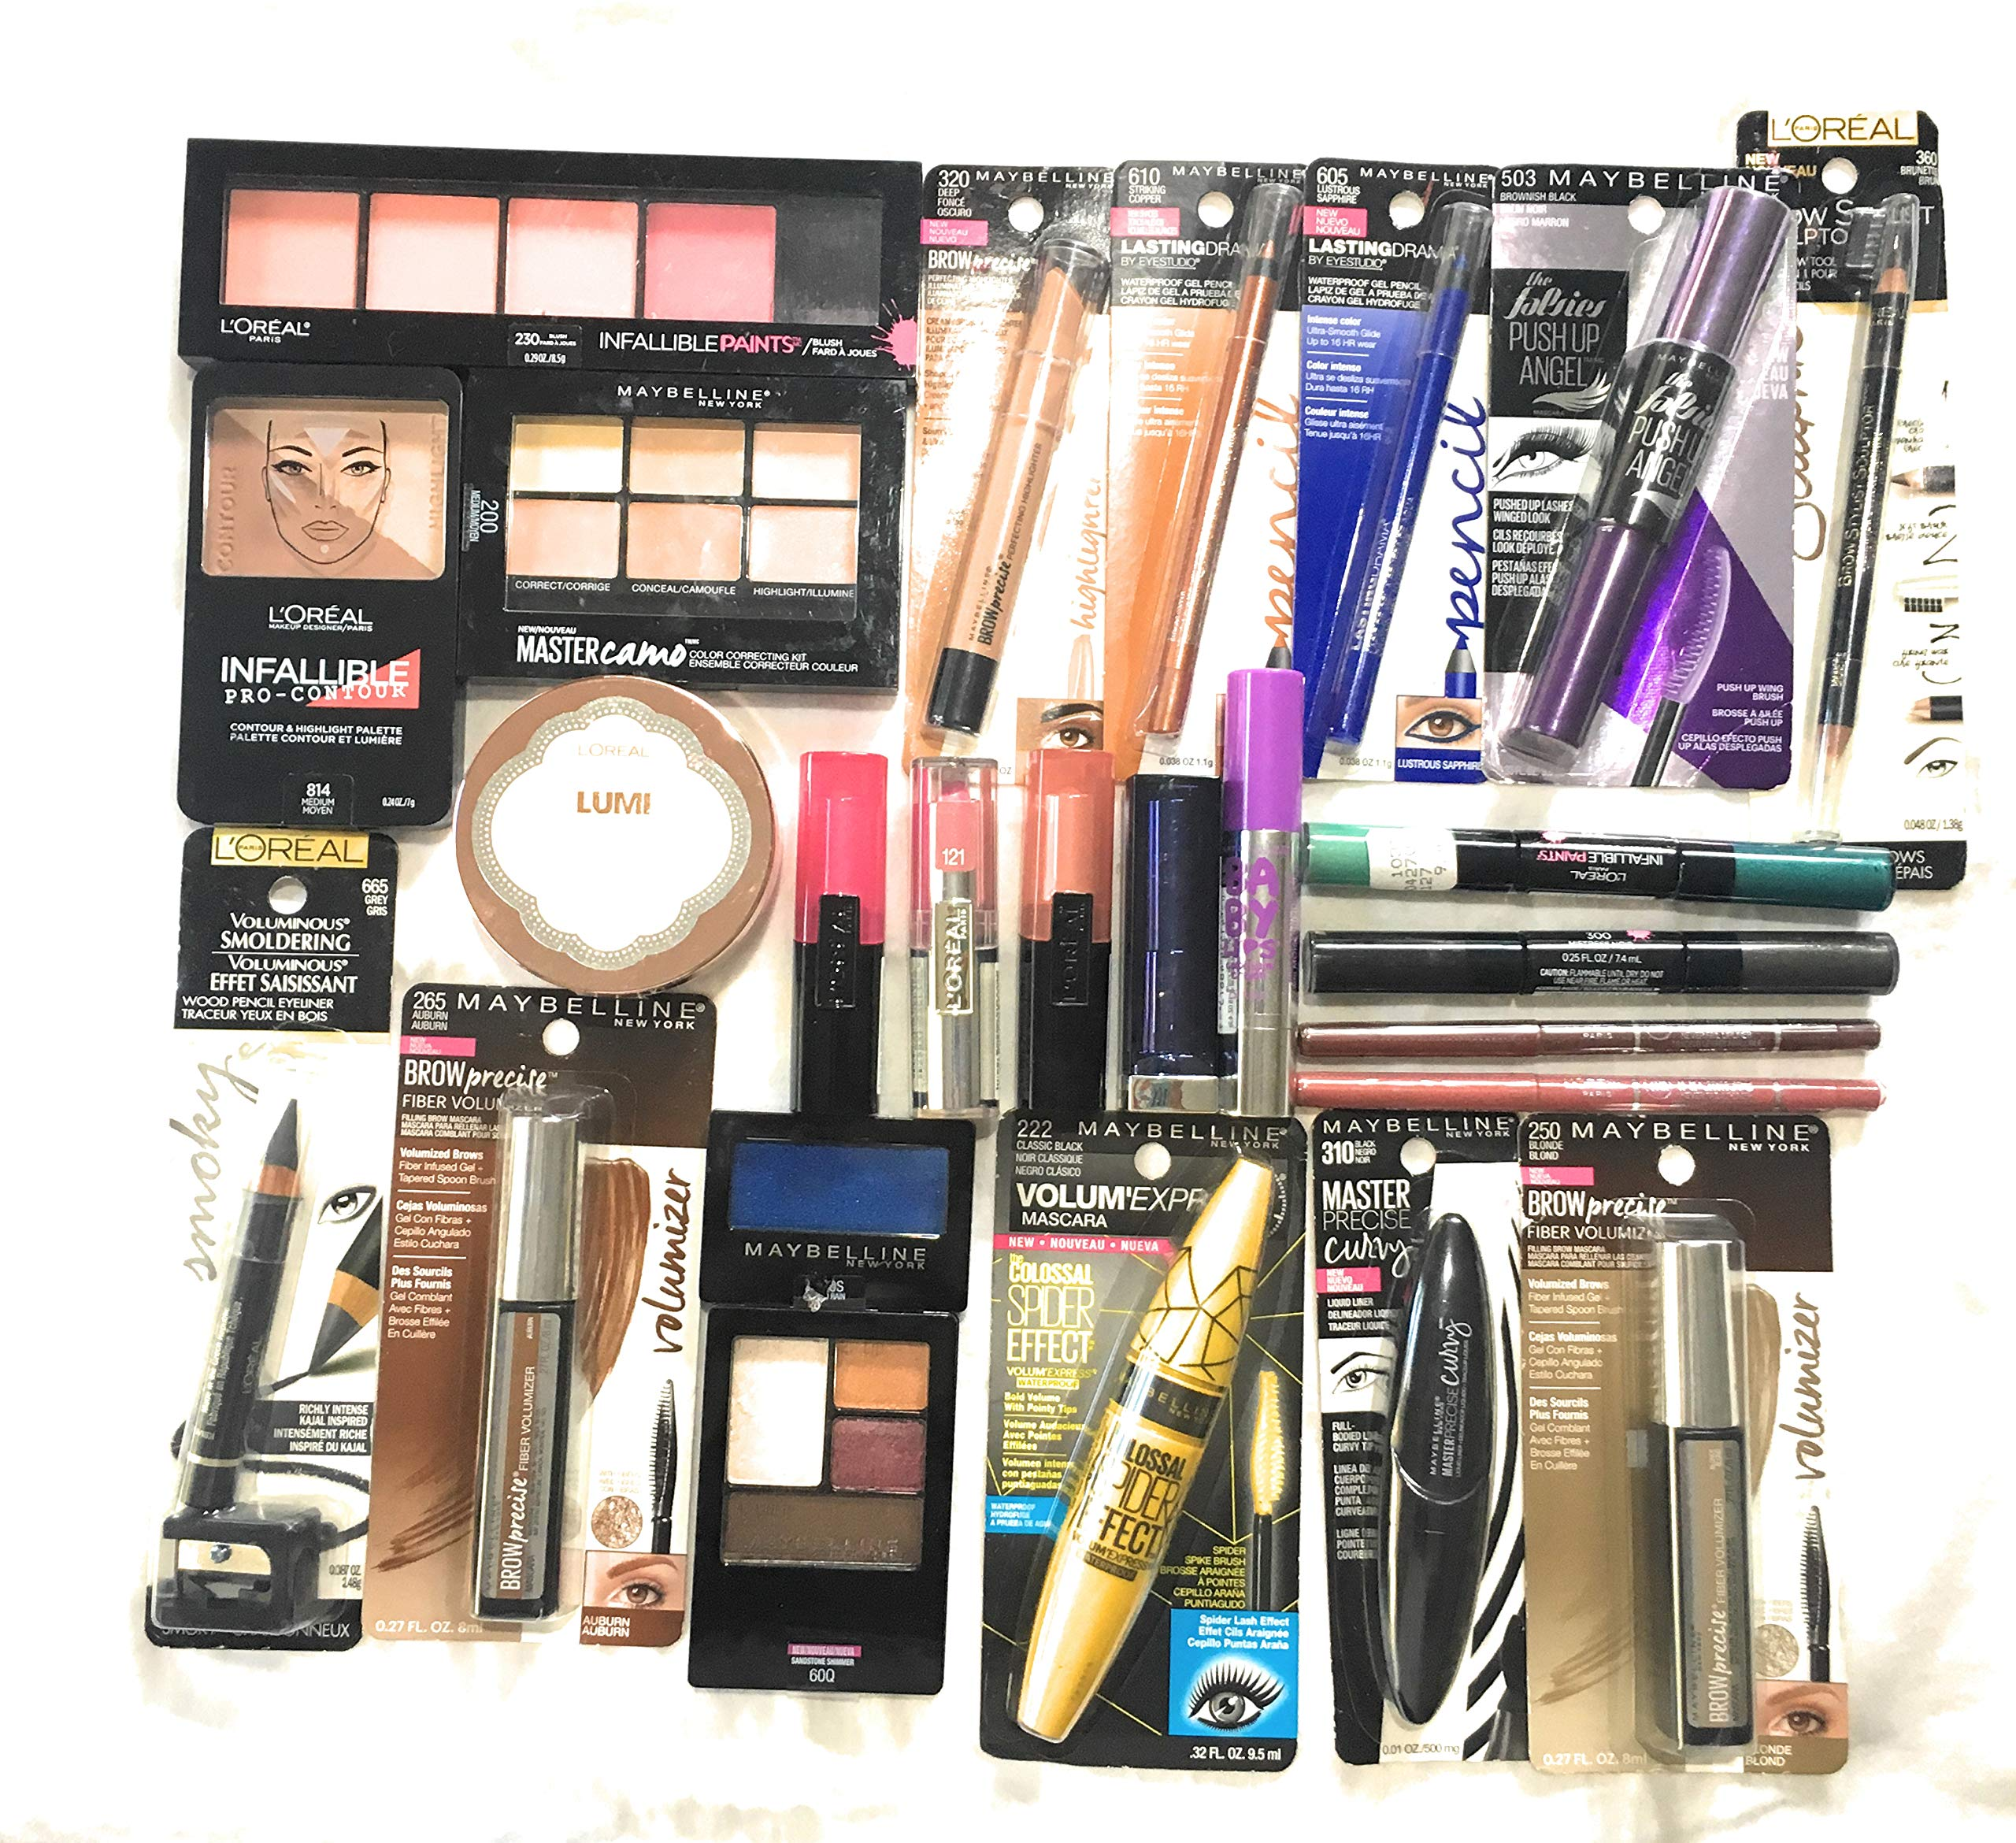 25 Assorted Piece Lot of Name Brand Makeup Wholesale, No Dups by Unknown (Image #1)